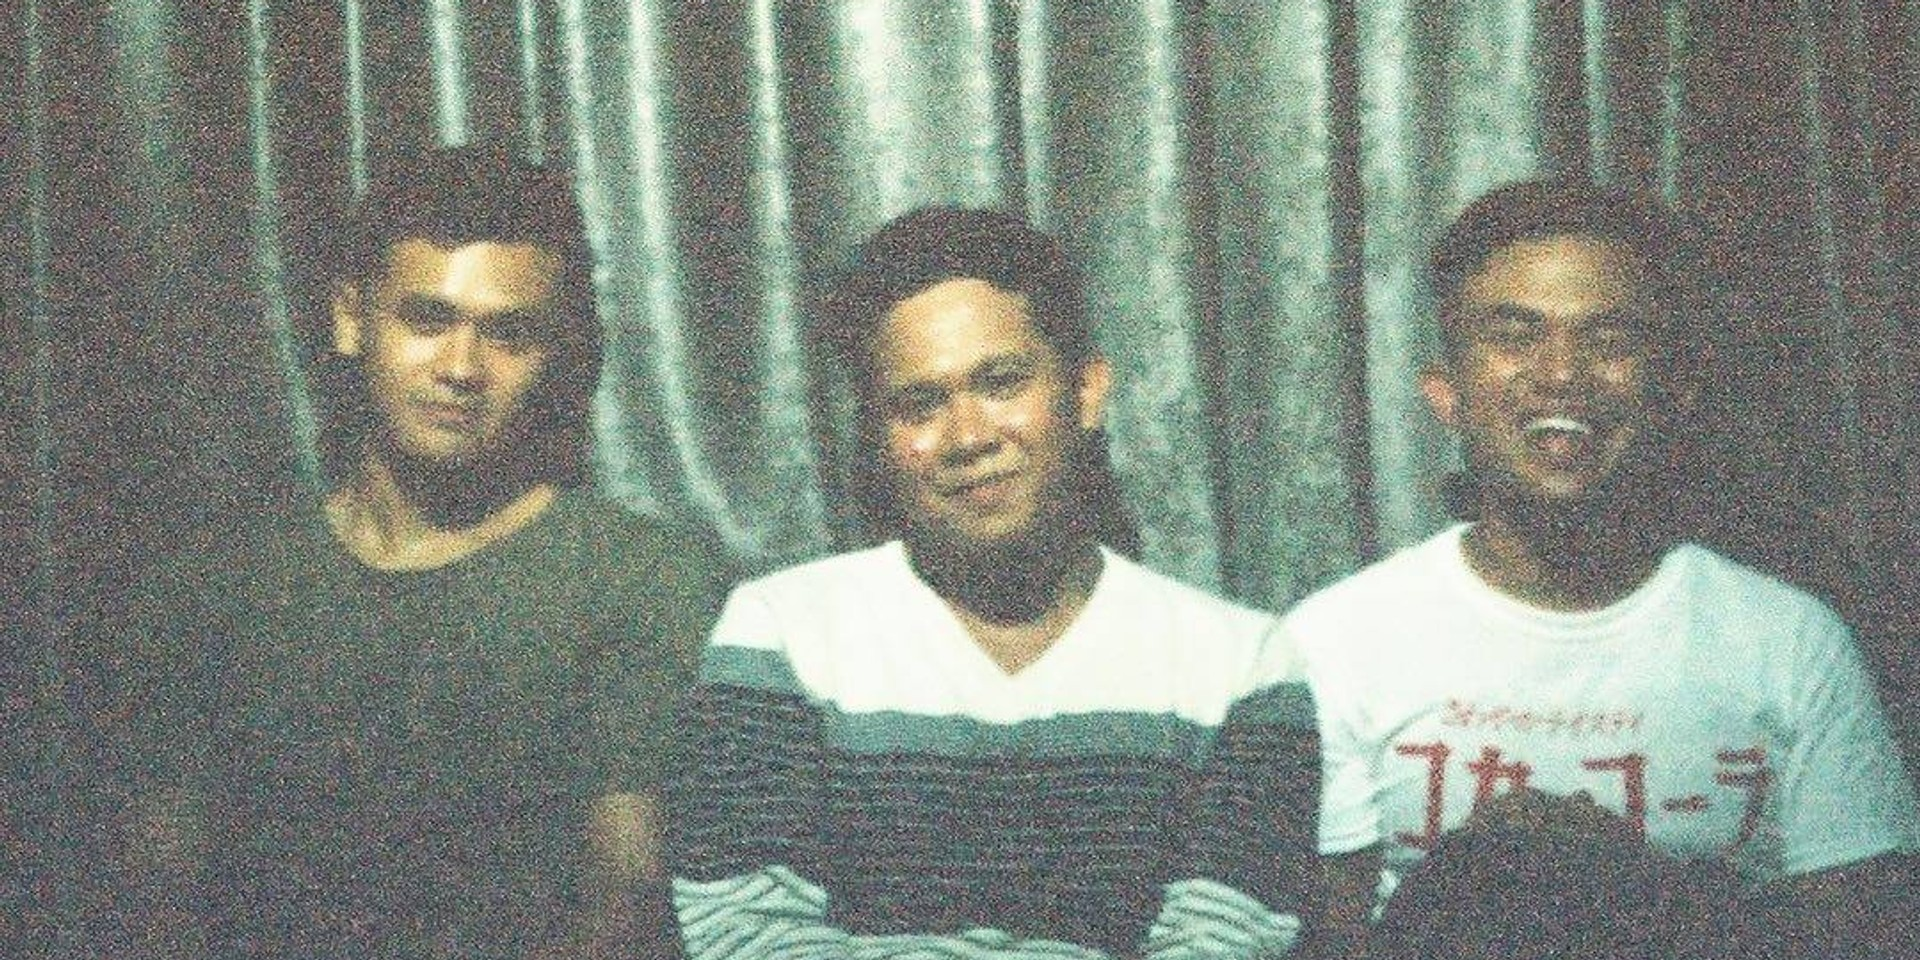 Tapestry's frontman Syed Hafiz passes away, bandmates are organising fundraiser for family